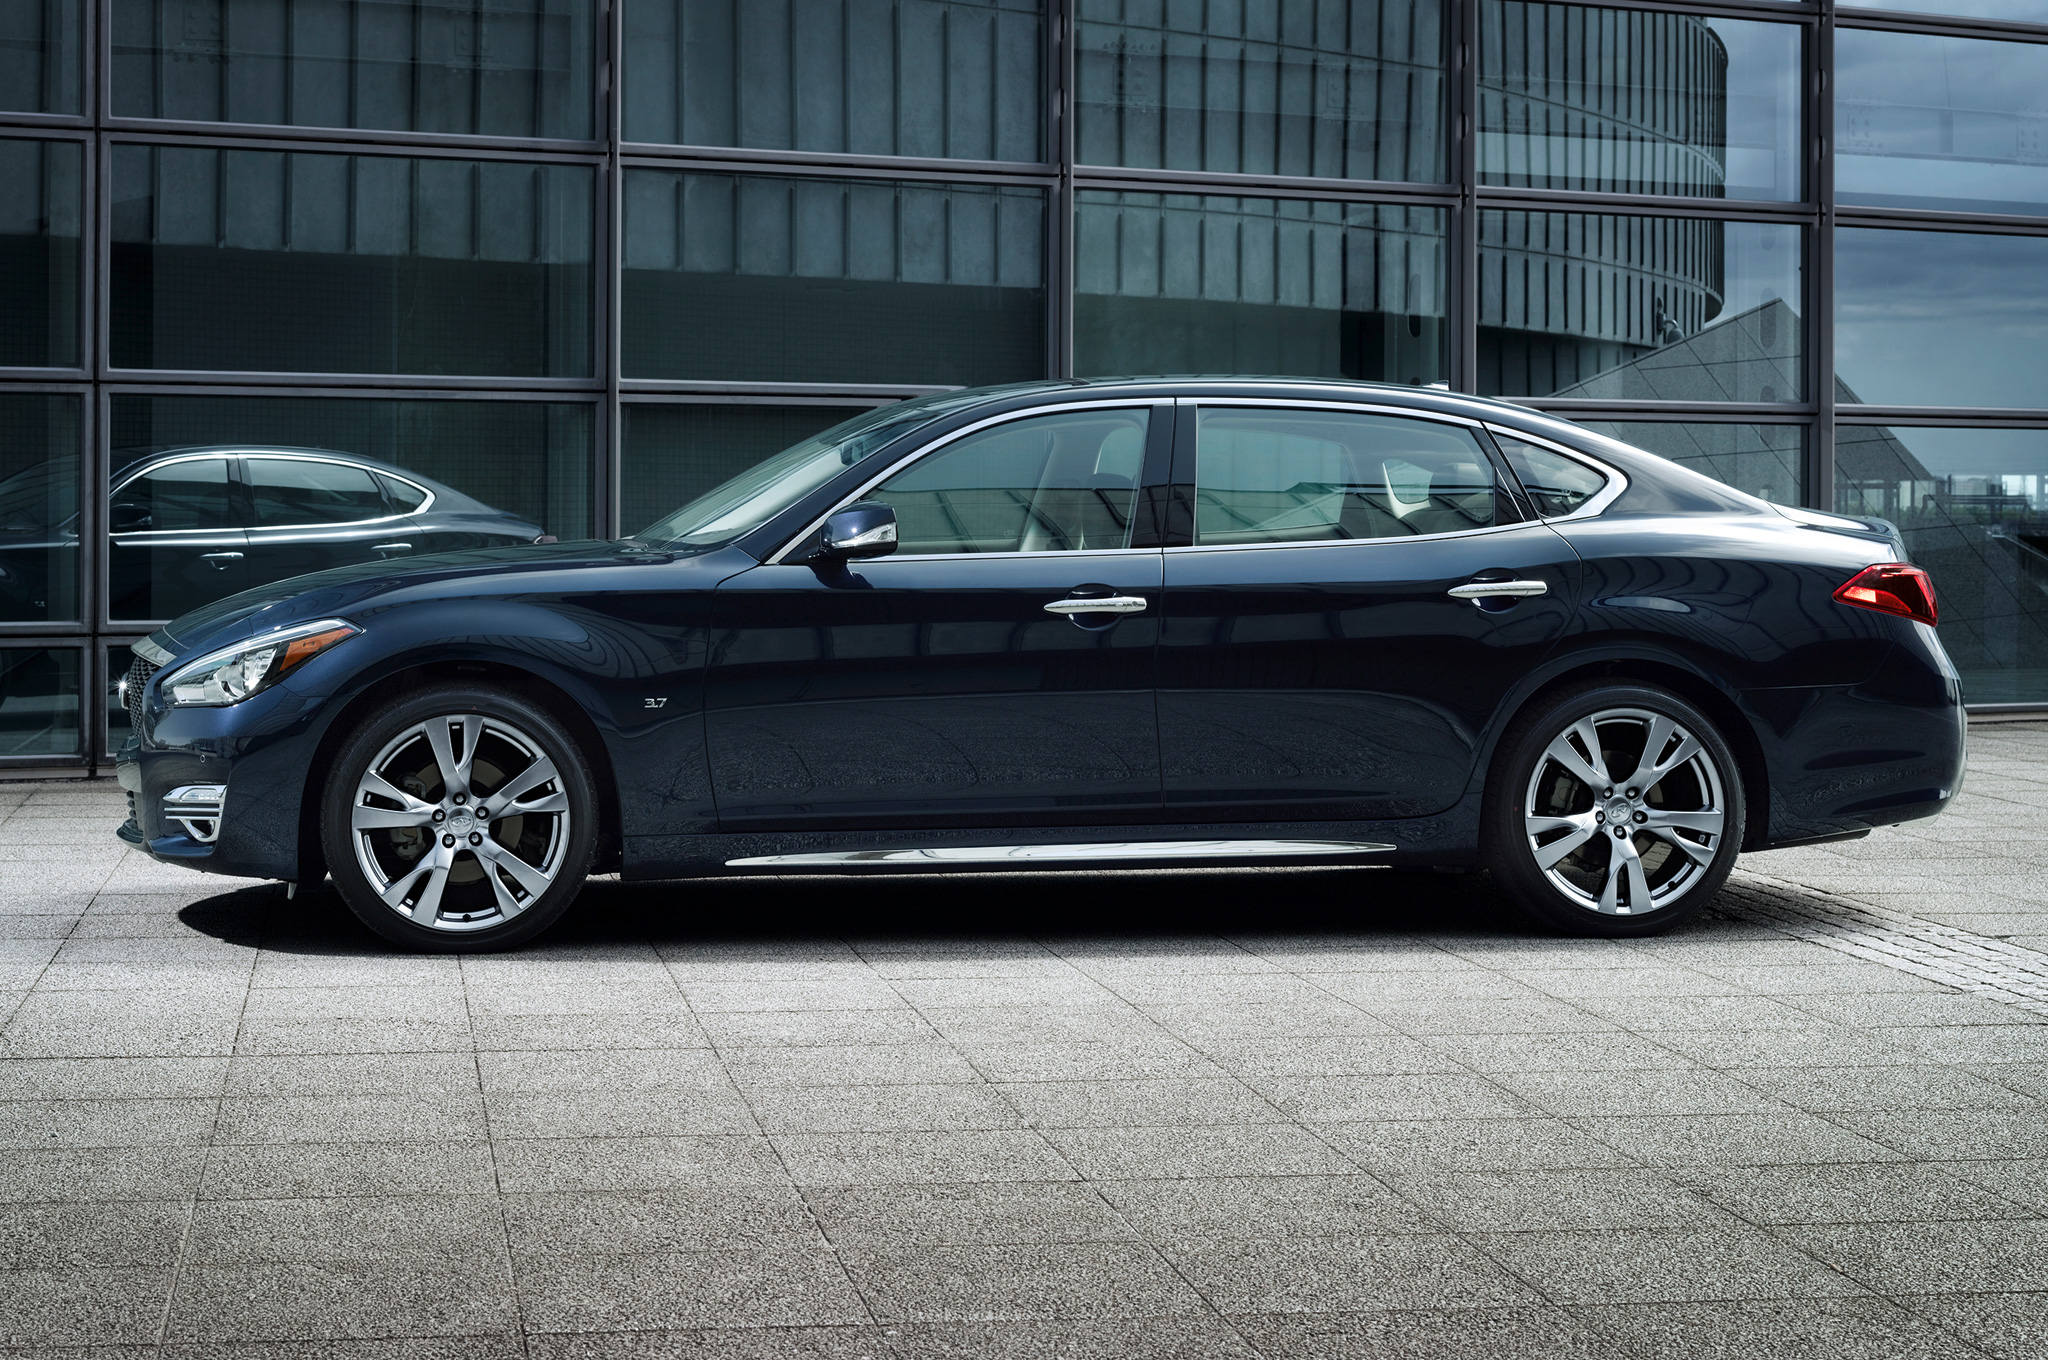 2015 Infiniti Q70l Side Profile (View 4 of 10)